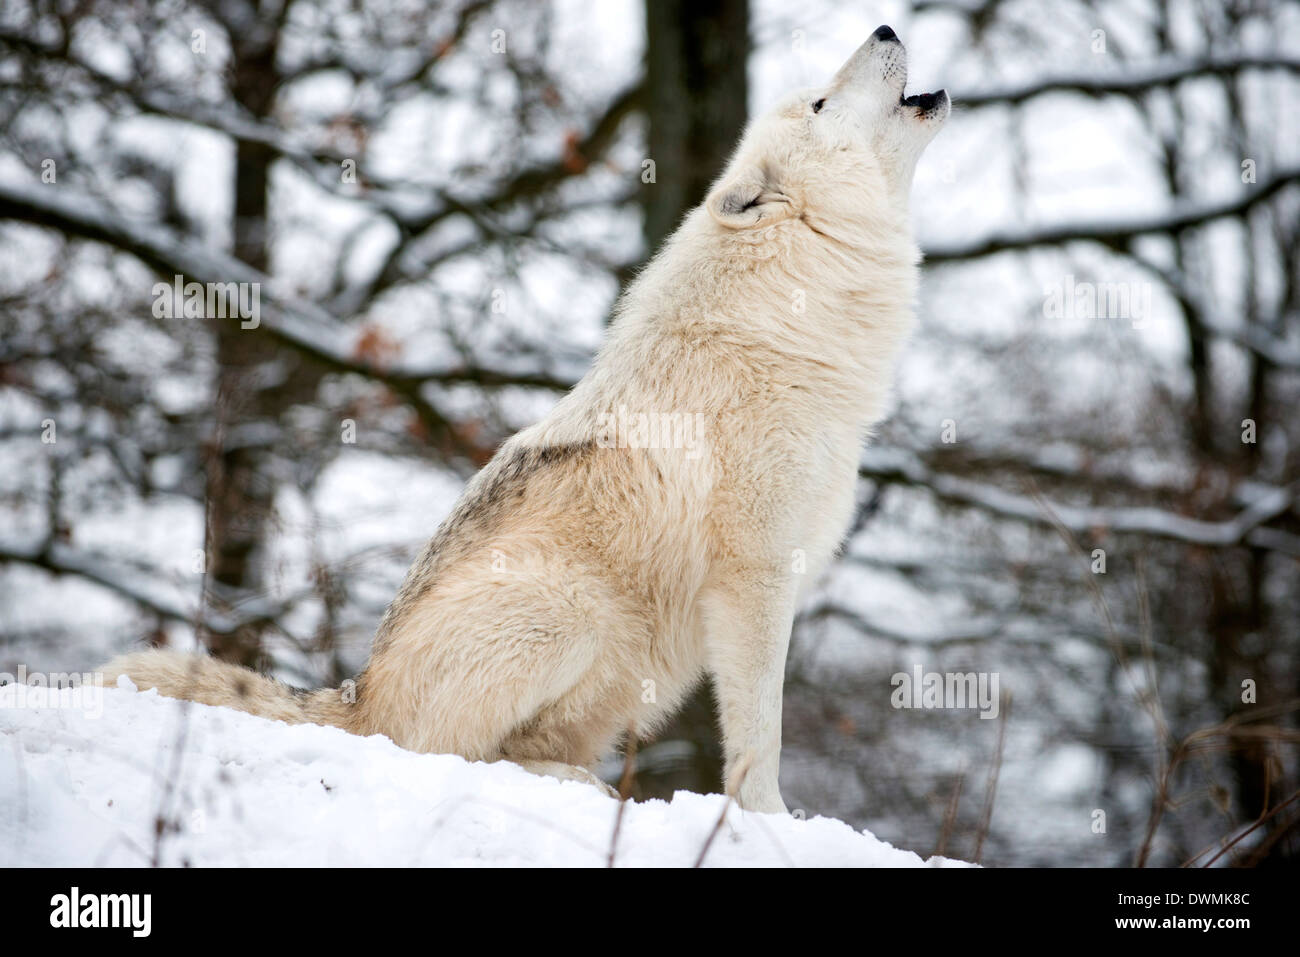 North American Timber wolf, Canis Lupus howling in the snow in deciduous forest. - Stock Image